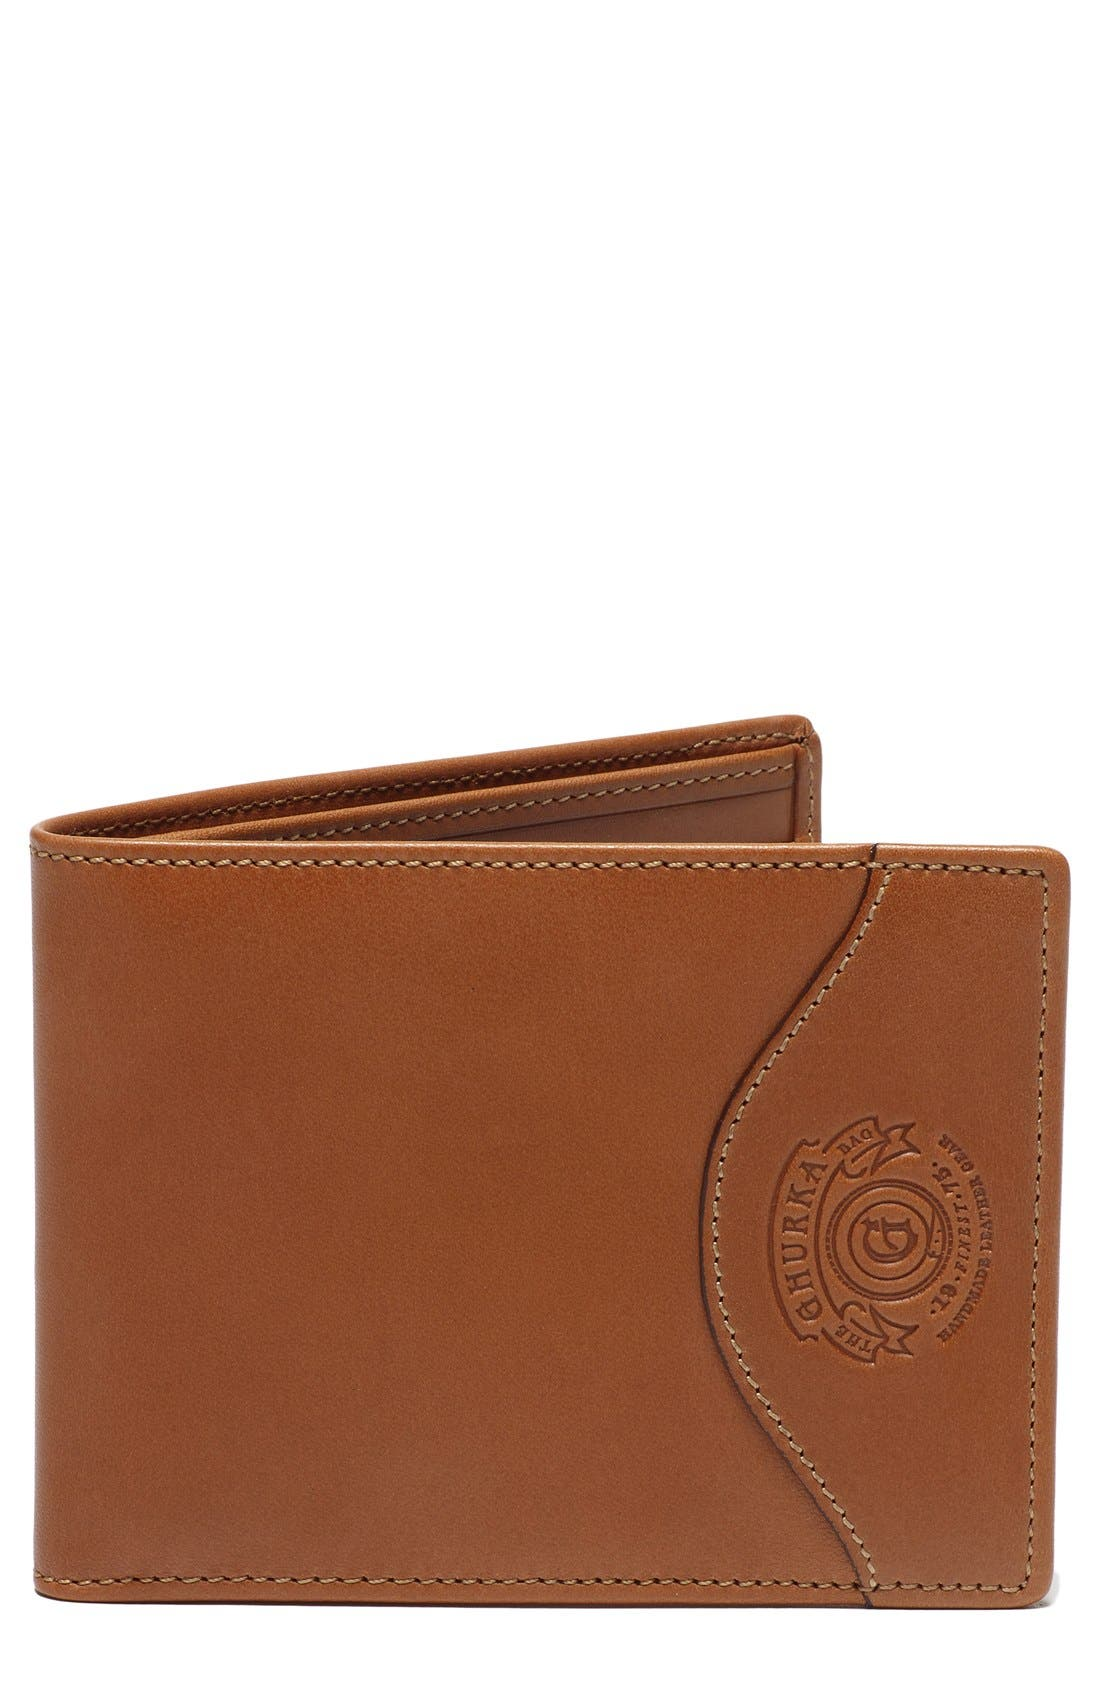 GHURKA Leather Wallet with ID Case